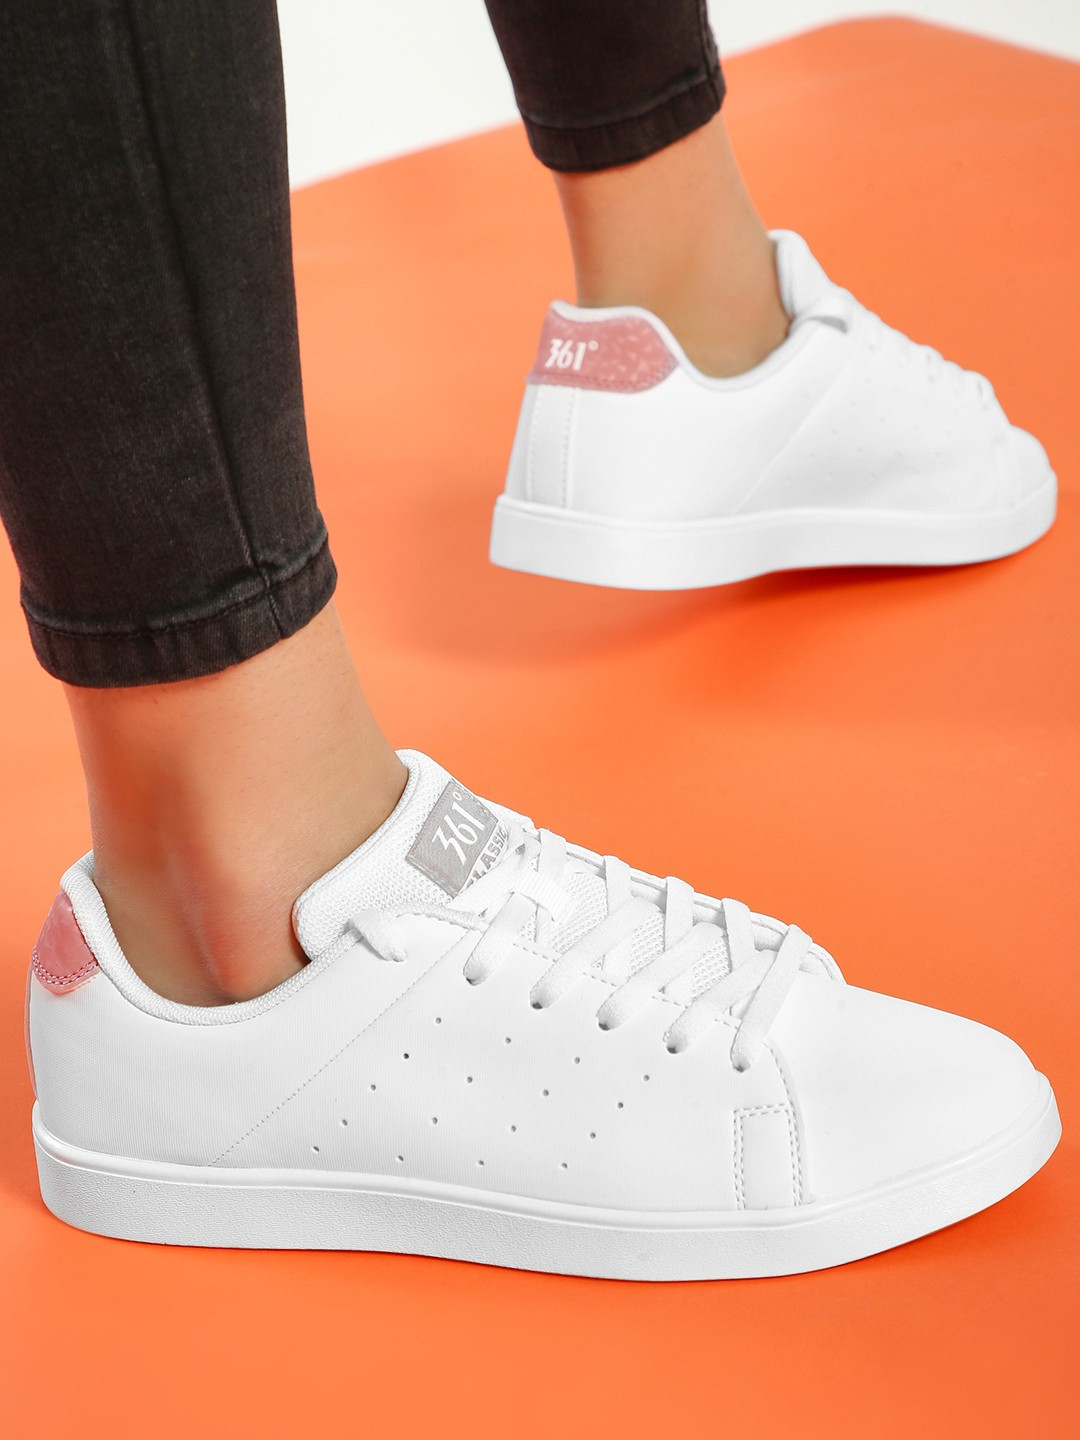 361 Degree White Perforated Side Lace-Up Sneakers 1